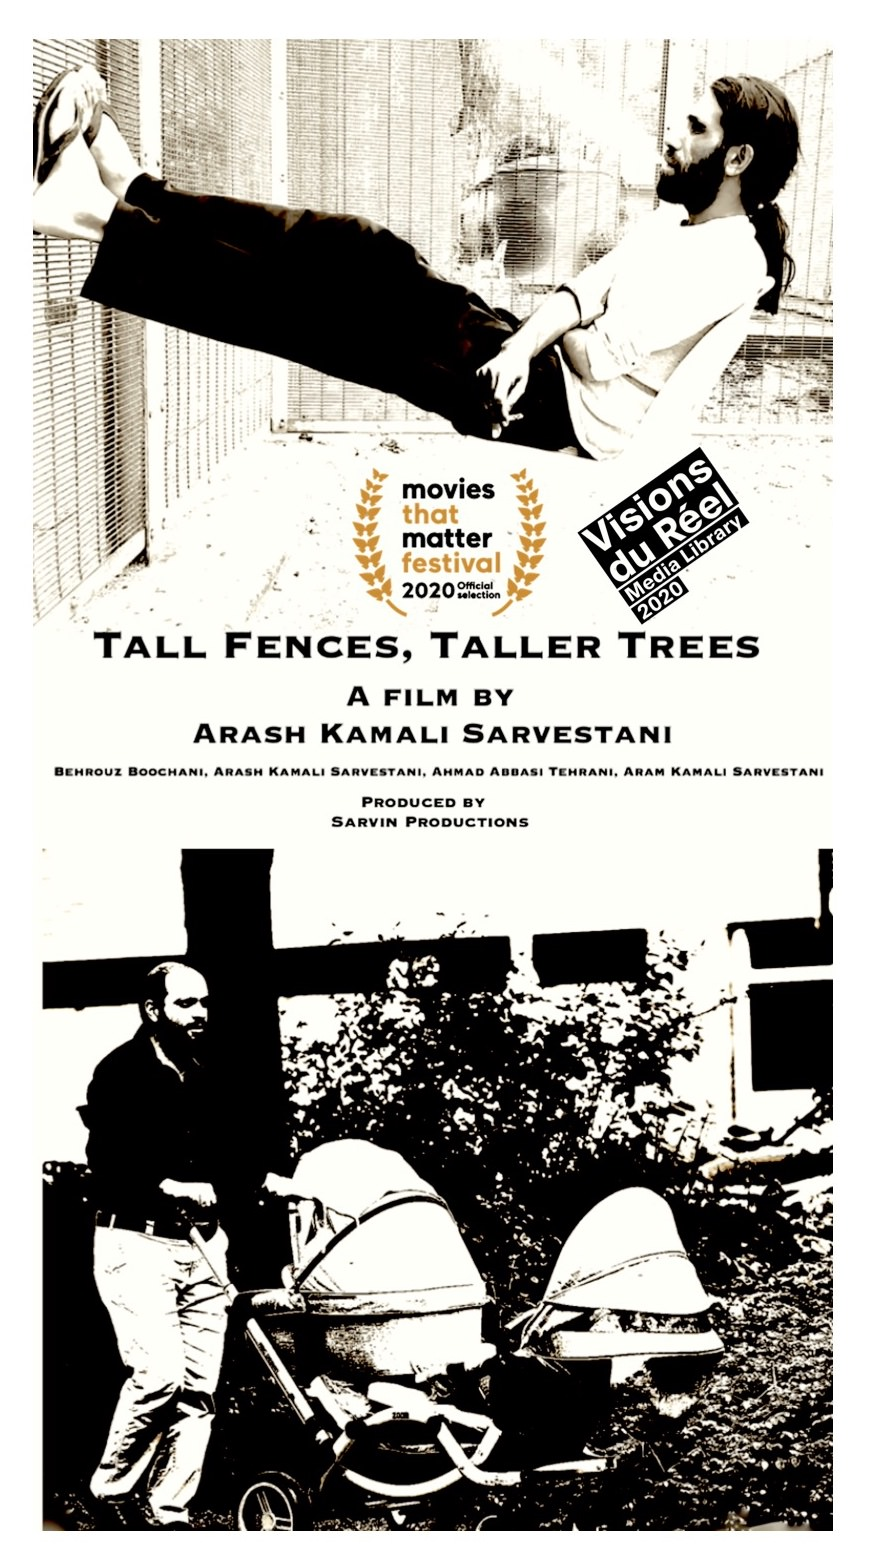 Main image: Film poster Tall Fences, Taller Trees Sarvin Productions/Visions du Réel